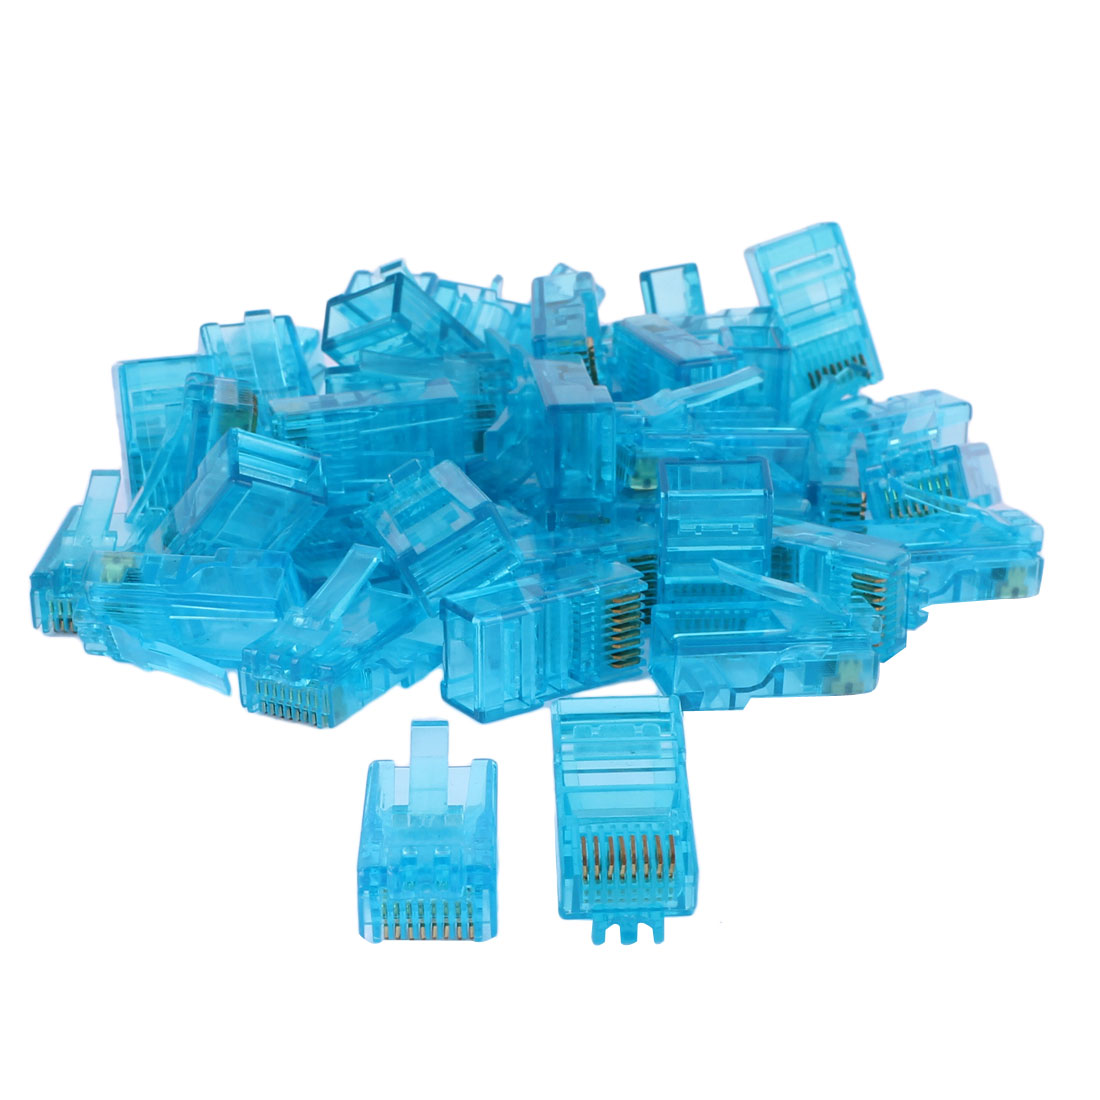 RJ45 8P8C CAT5 Modular Ethenet Network Cable LAN Connector Clear Blue 50pcs